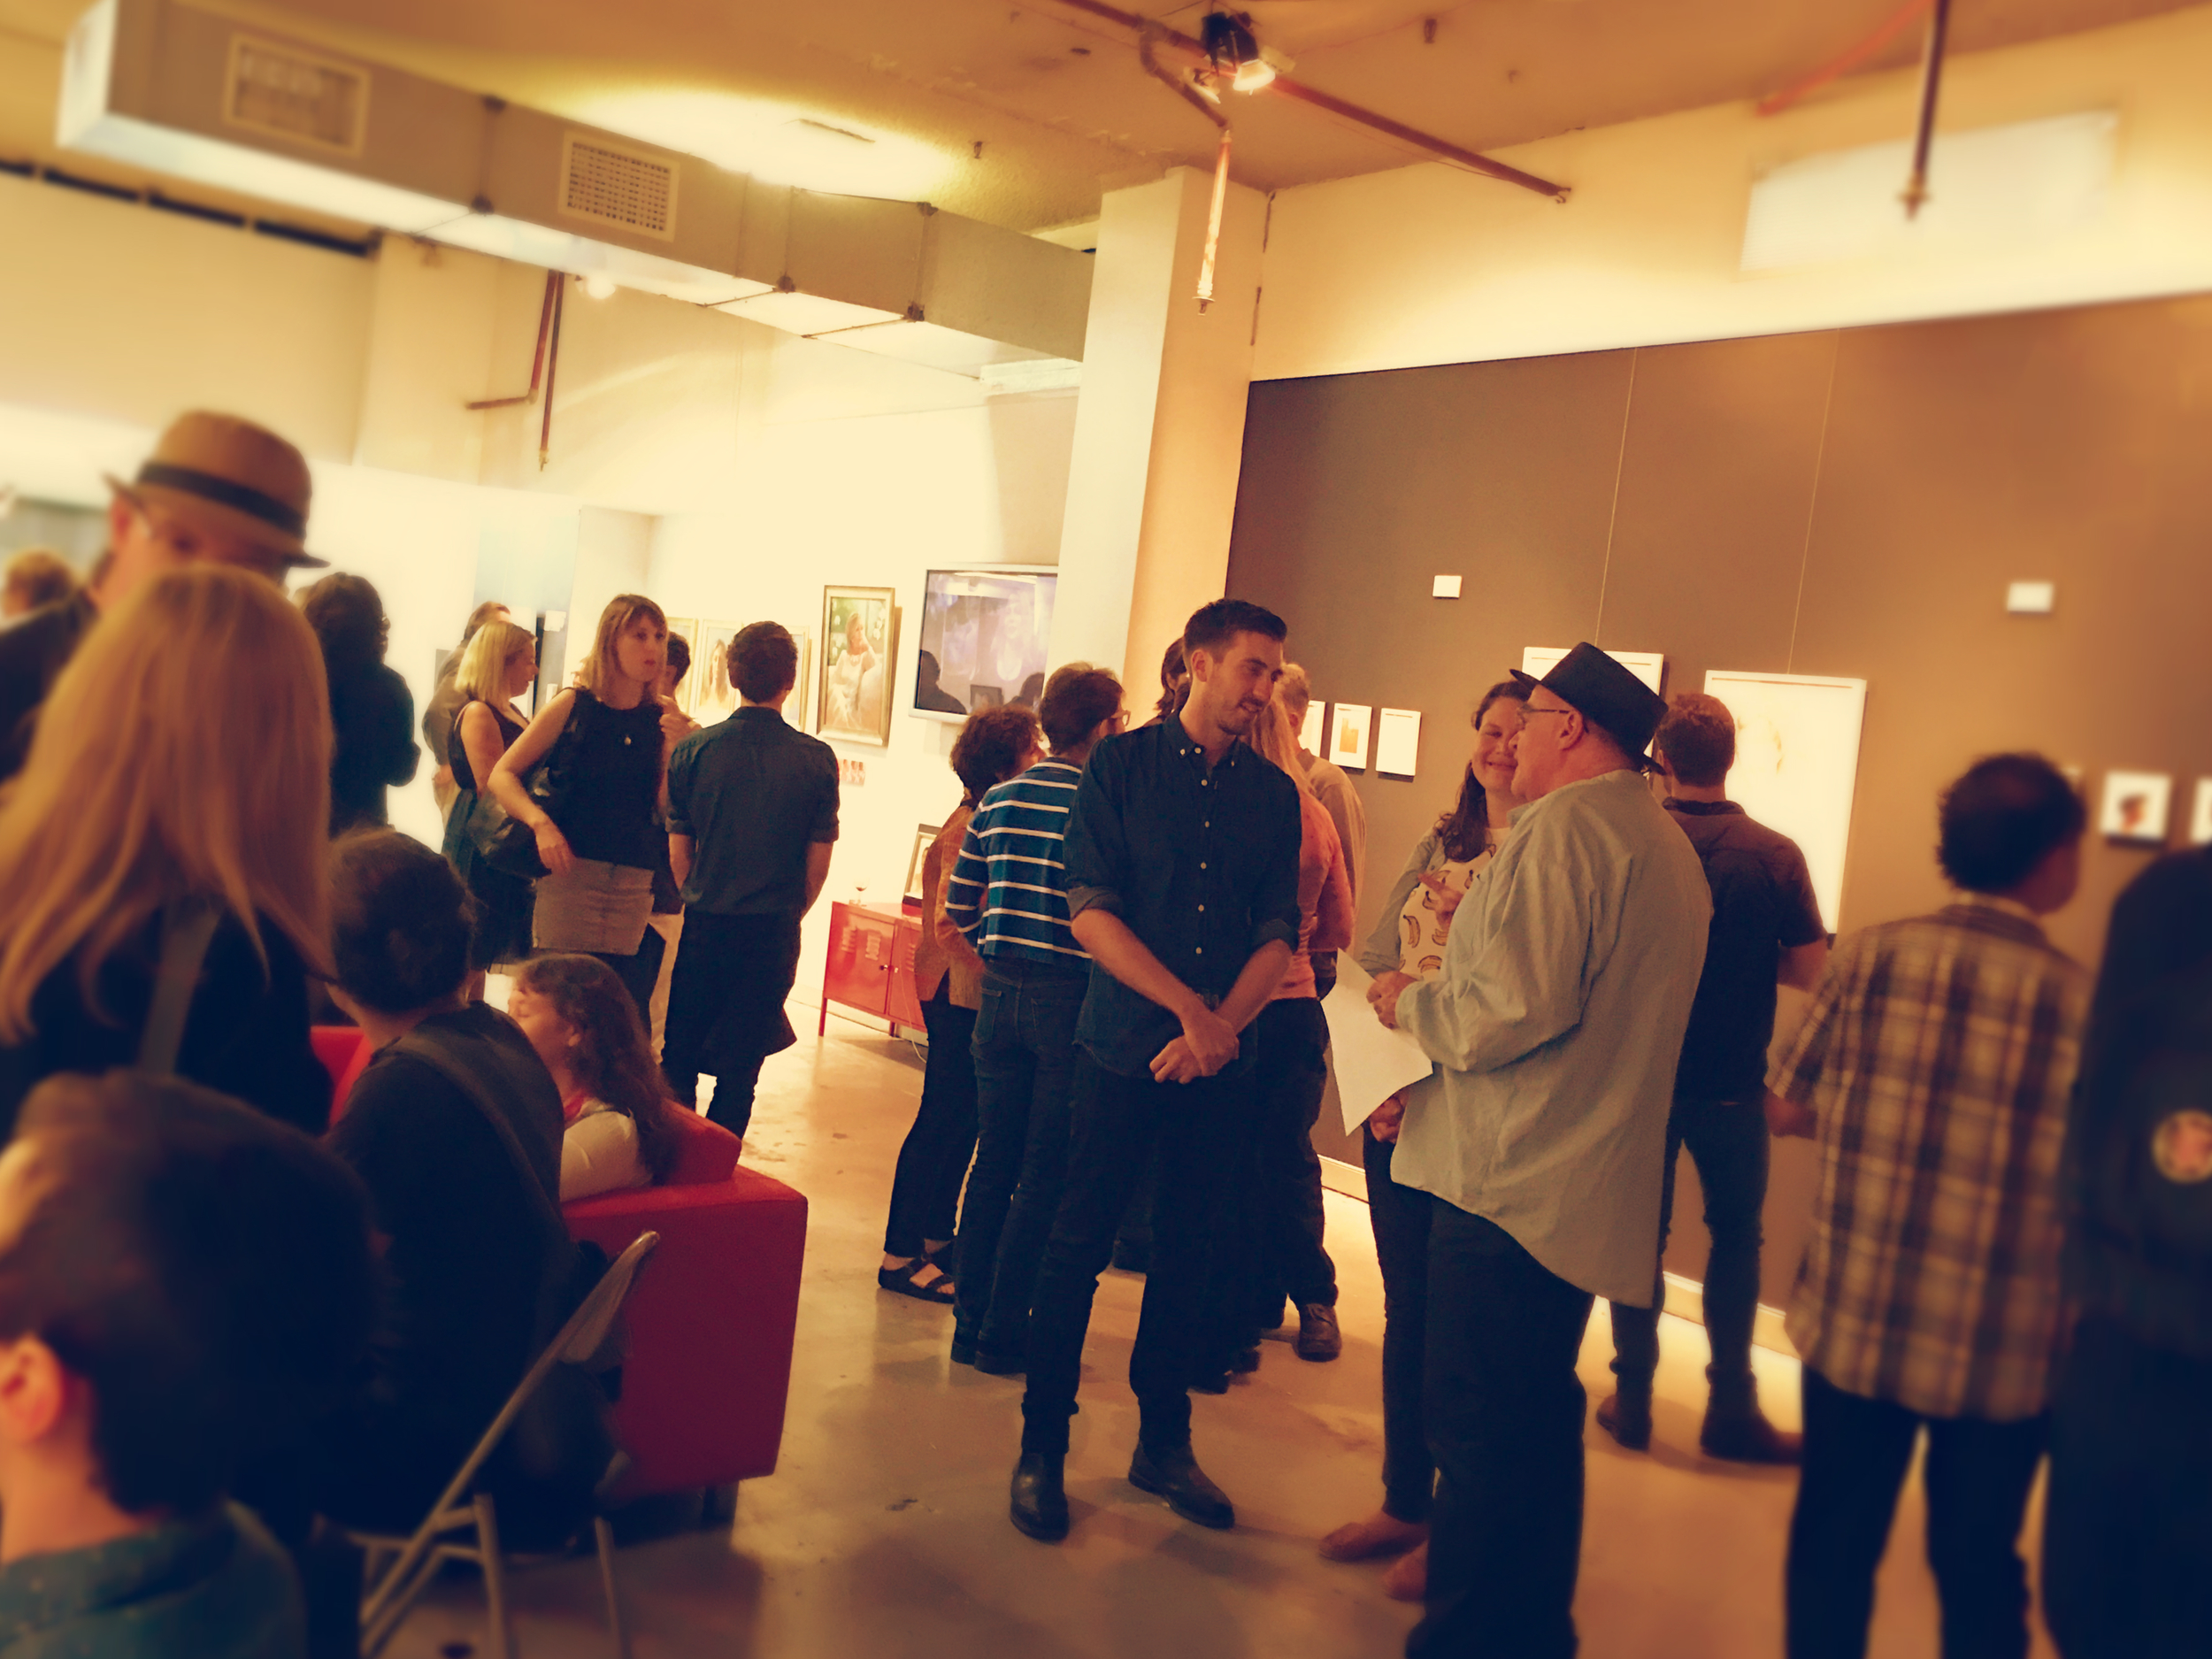 Crowds gathering at Project 504 gallery.